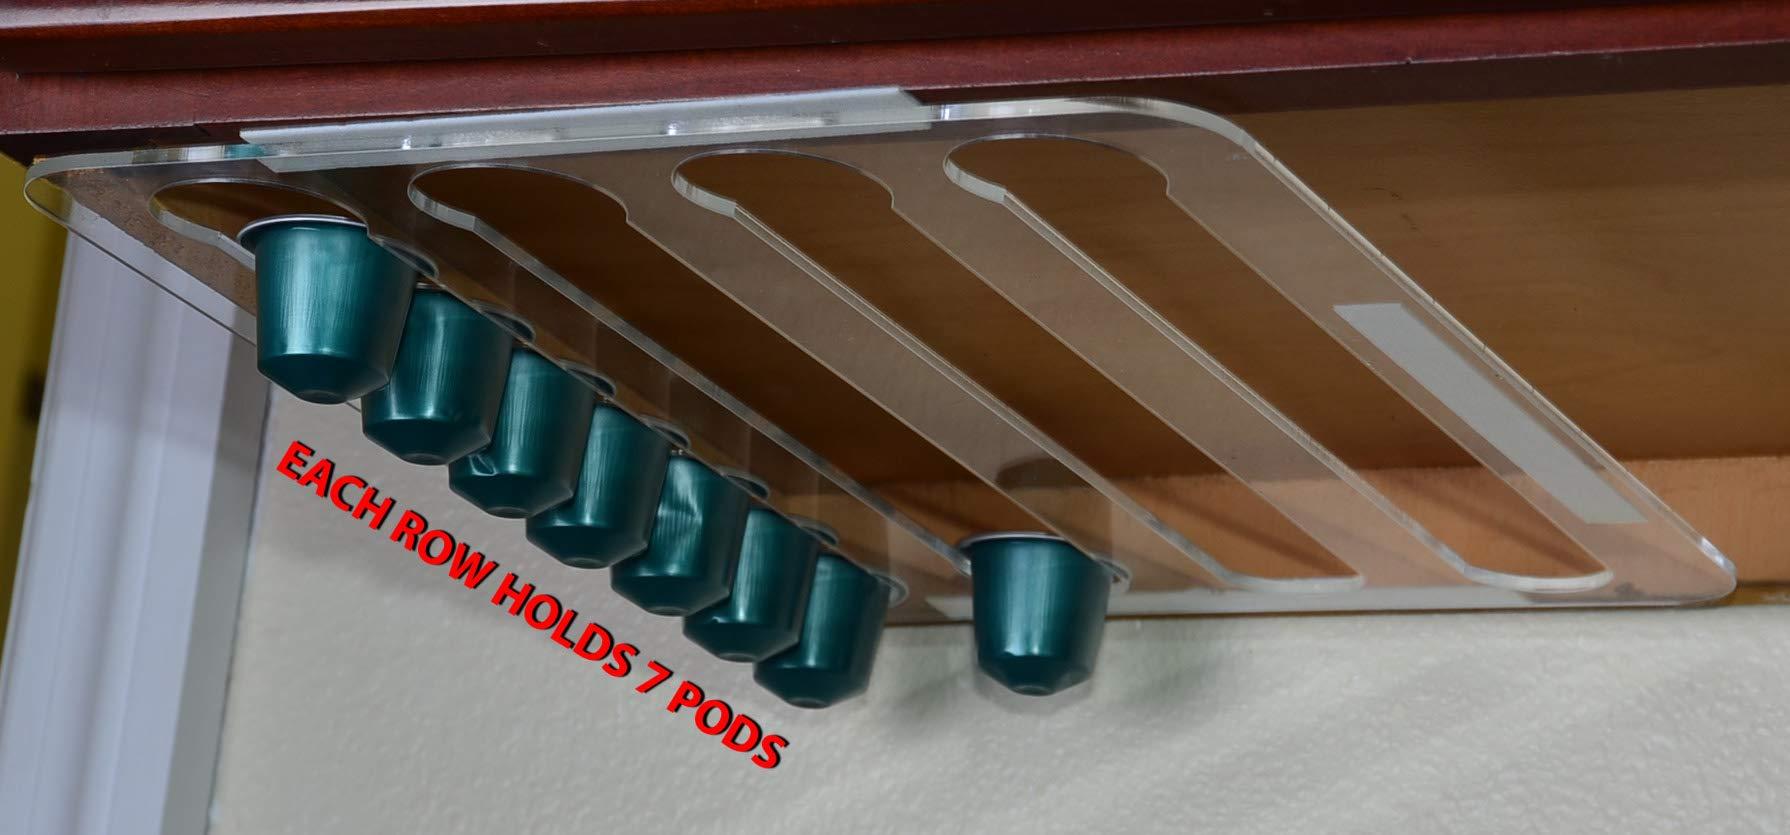 Marketing Holders Under Cabinets Coffee Pod Holder for Nespresso Lavazza Organizer Qty 6 by Marketing Holders (Image #5)